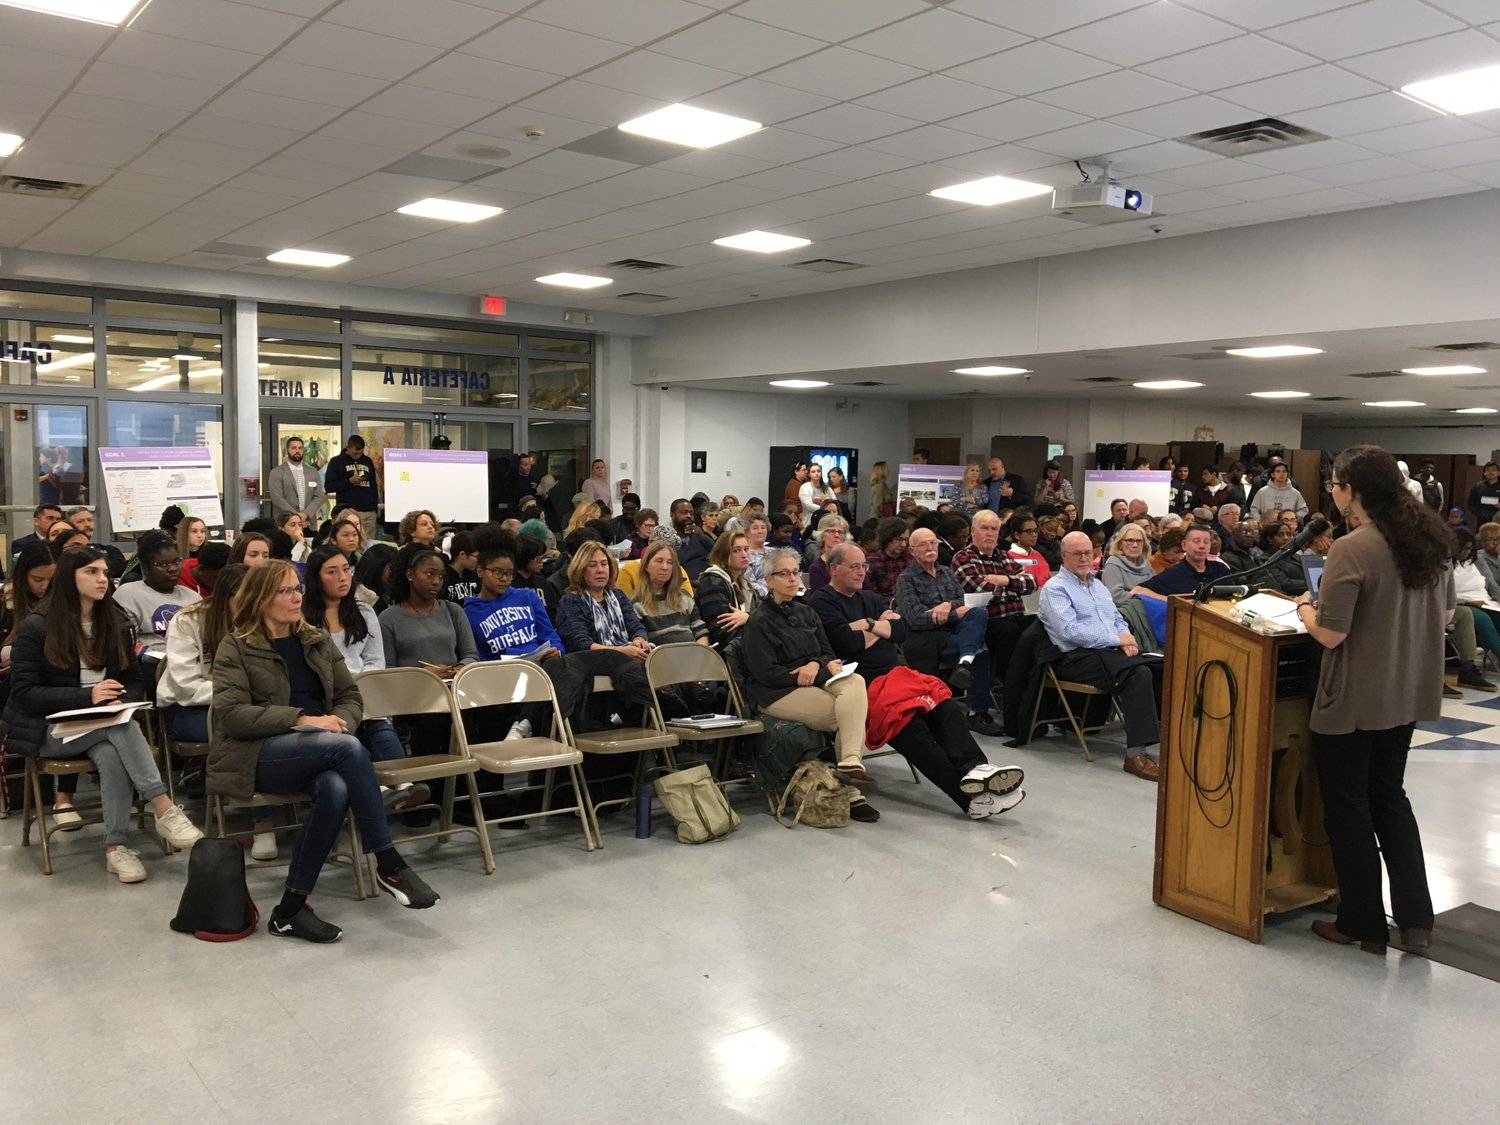 Abi Rudow, of VHB Engineering, a consulting team working on the Downtown Revitalization Initiative, spoke to residents at a community meeting at Baldwin High School on Nov. 20.